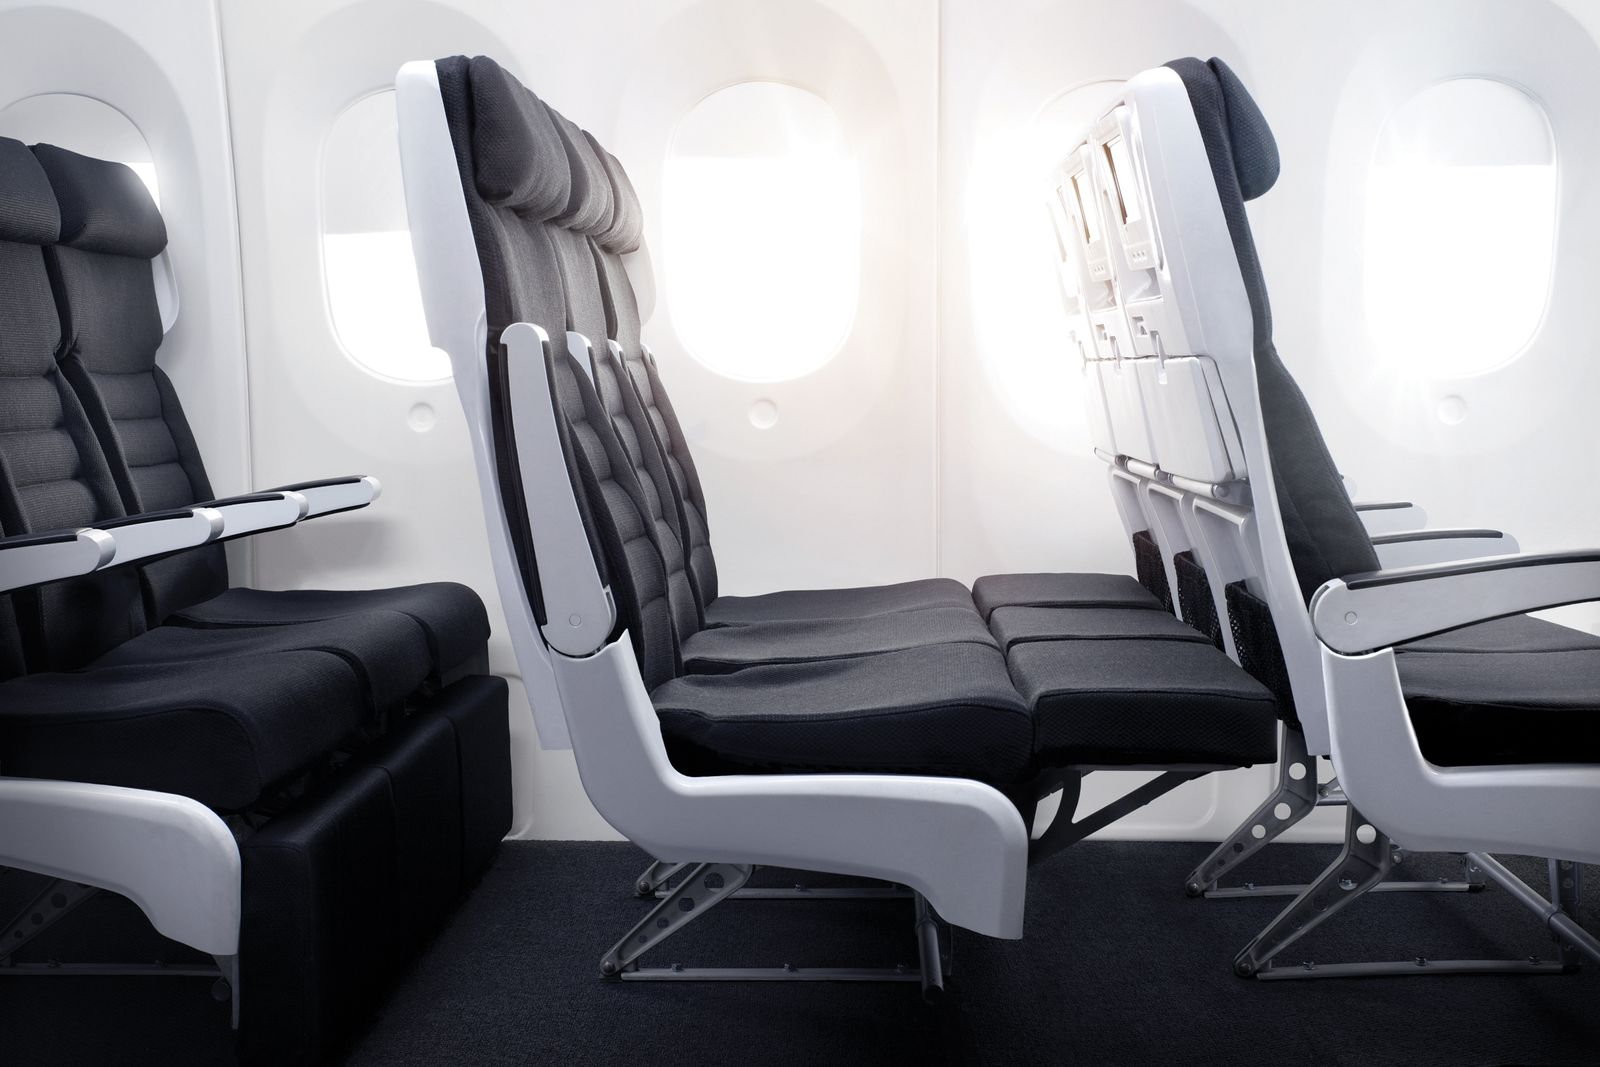 EINMALIGE VERWENDUNG Recaro / Air New Zealand SkyCouch